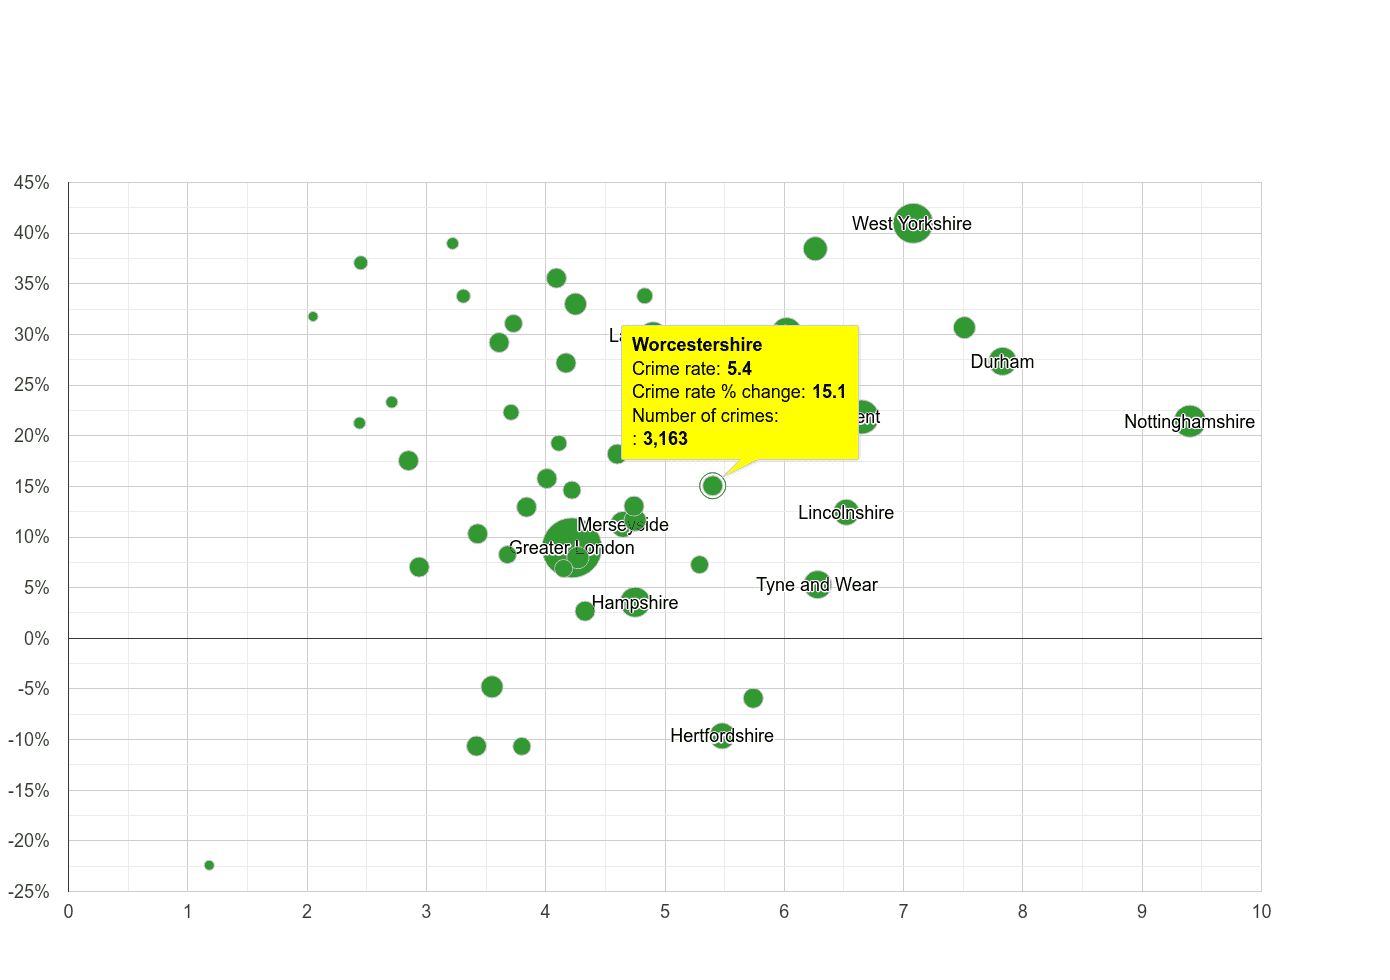 Worcestershire shoplifting crime rate compared to other counties